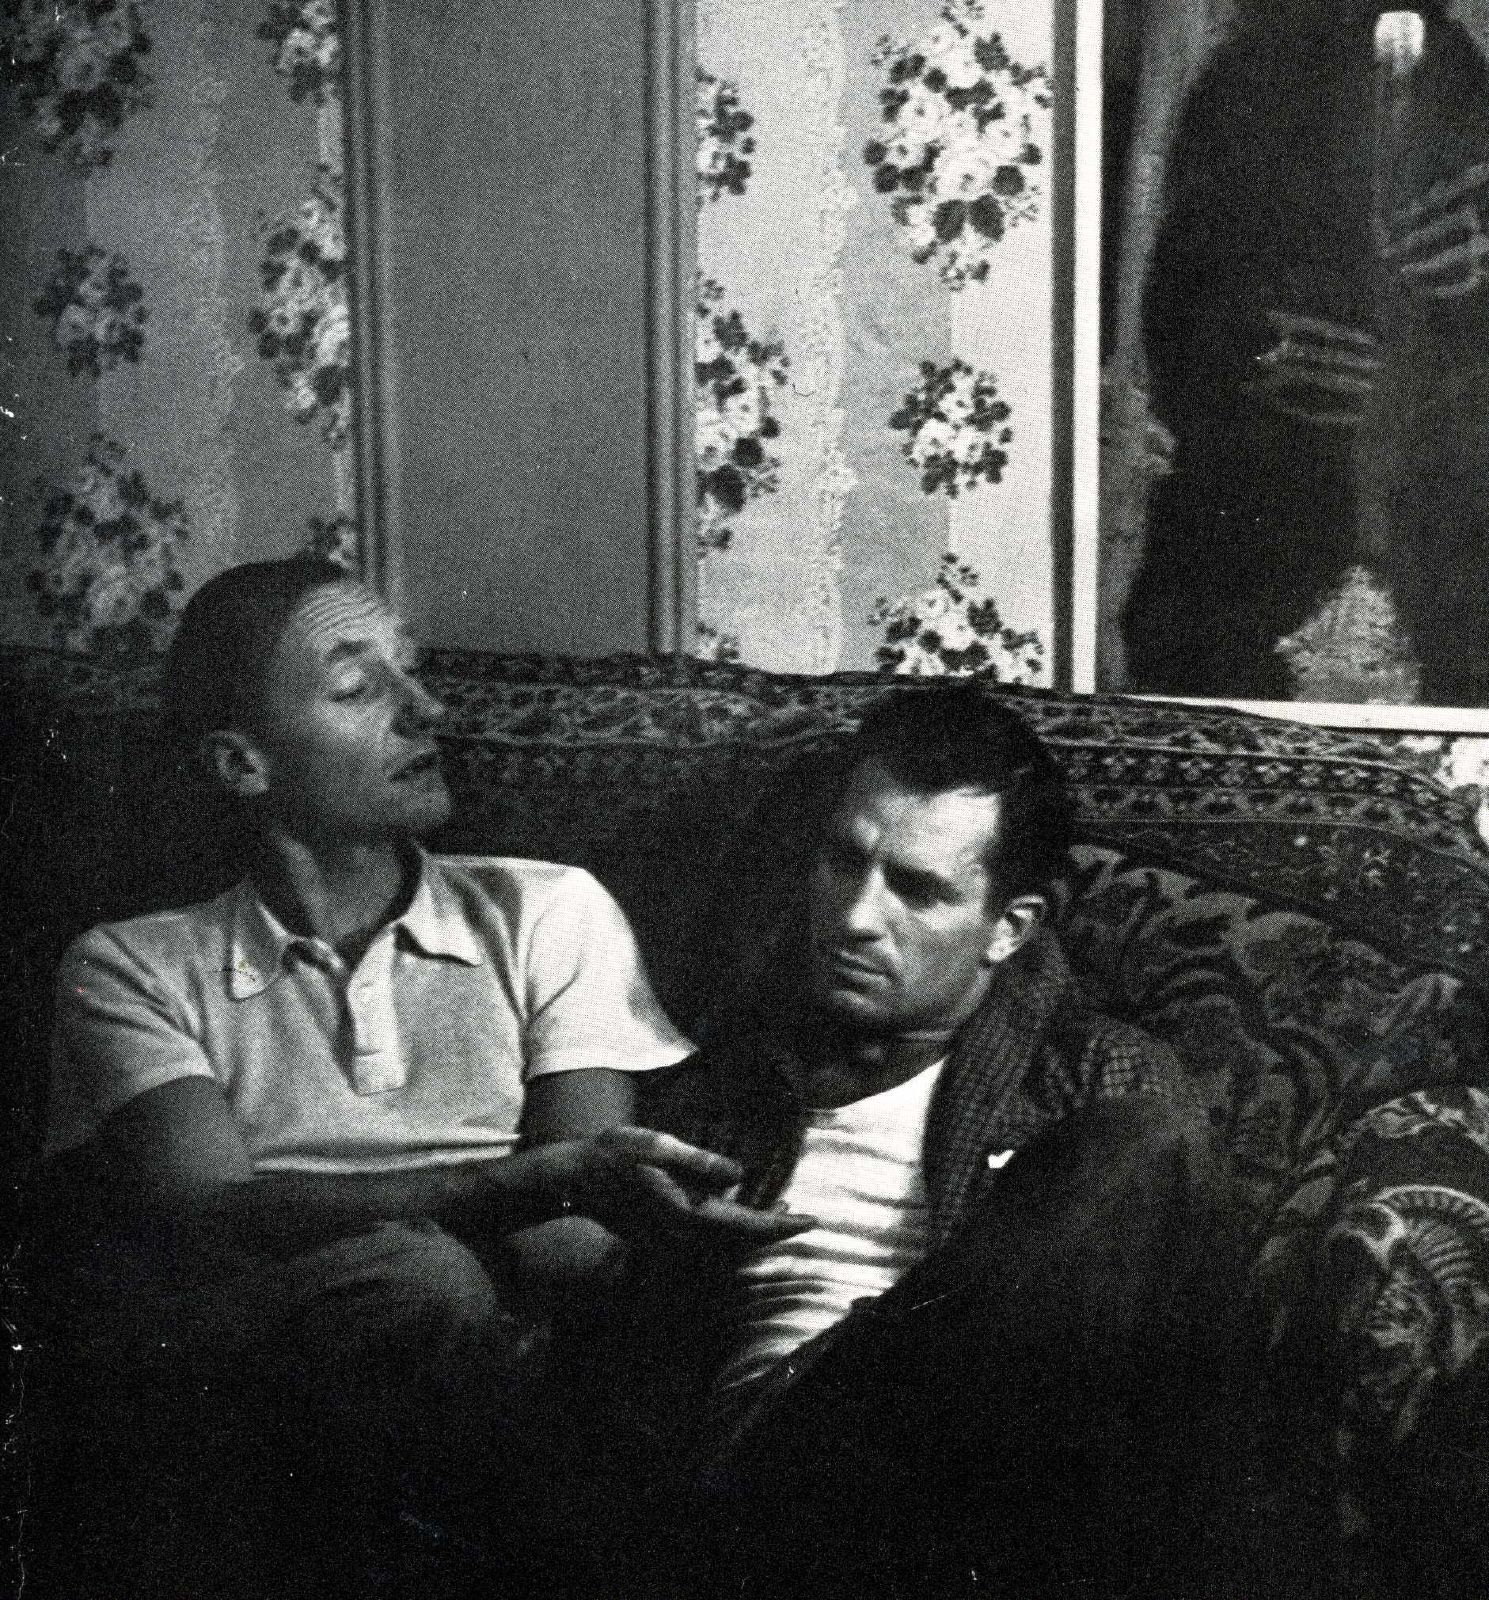 Two men sit on an oriental patterned couch. Ginsberg is on the left, turning towards Kerouac and raising his eyebrows.